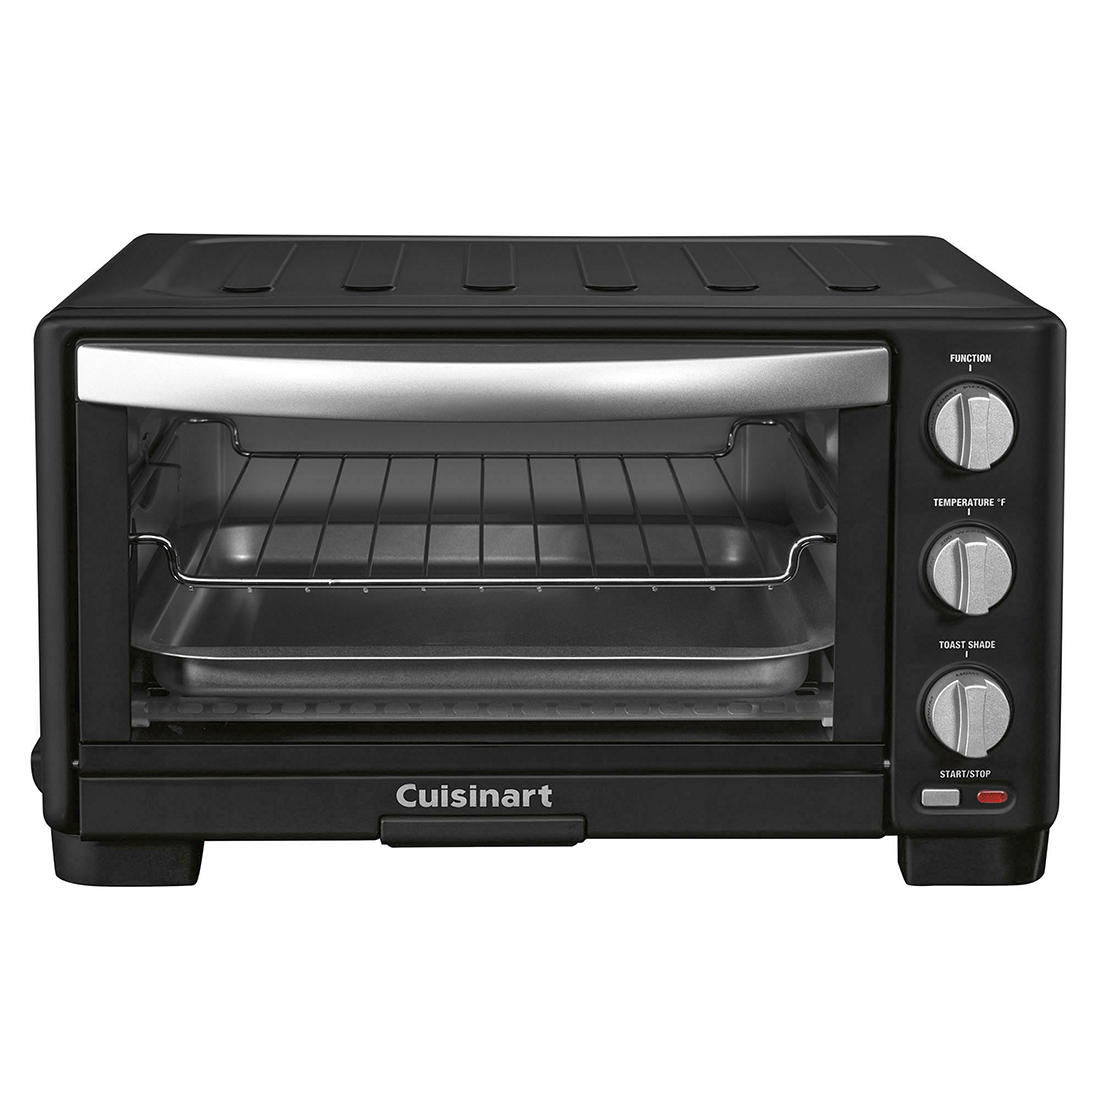 Cuisinart Toaster Oven And Broiler Matte Black Bjs Wholesale Club